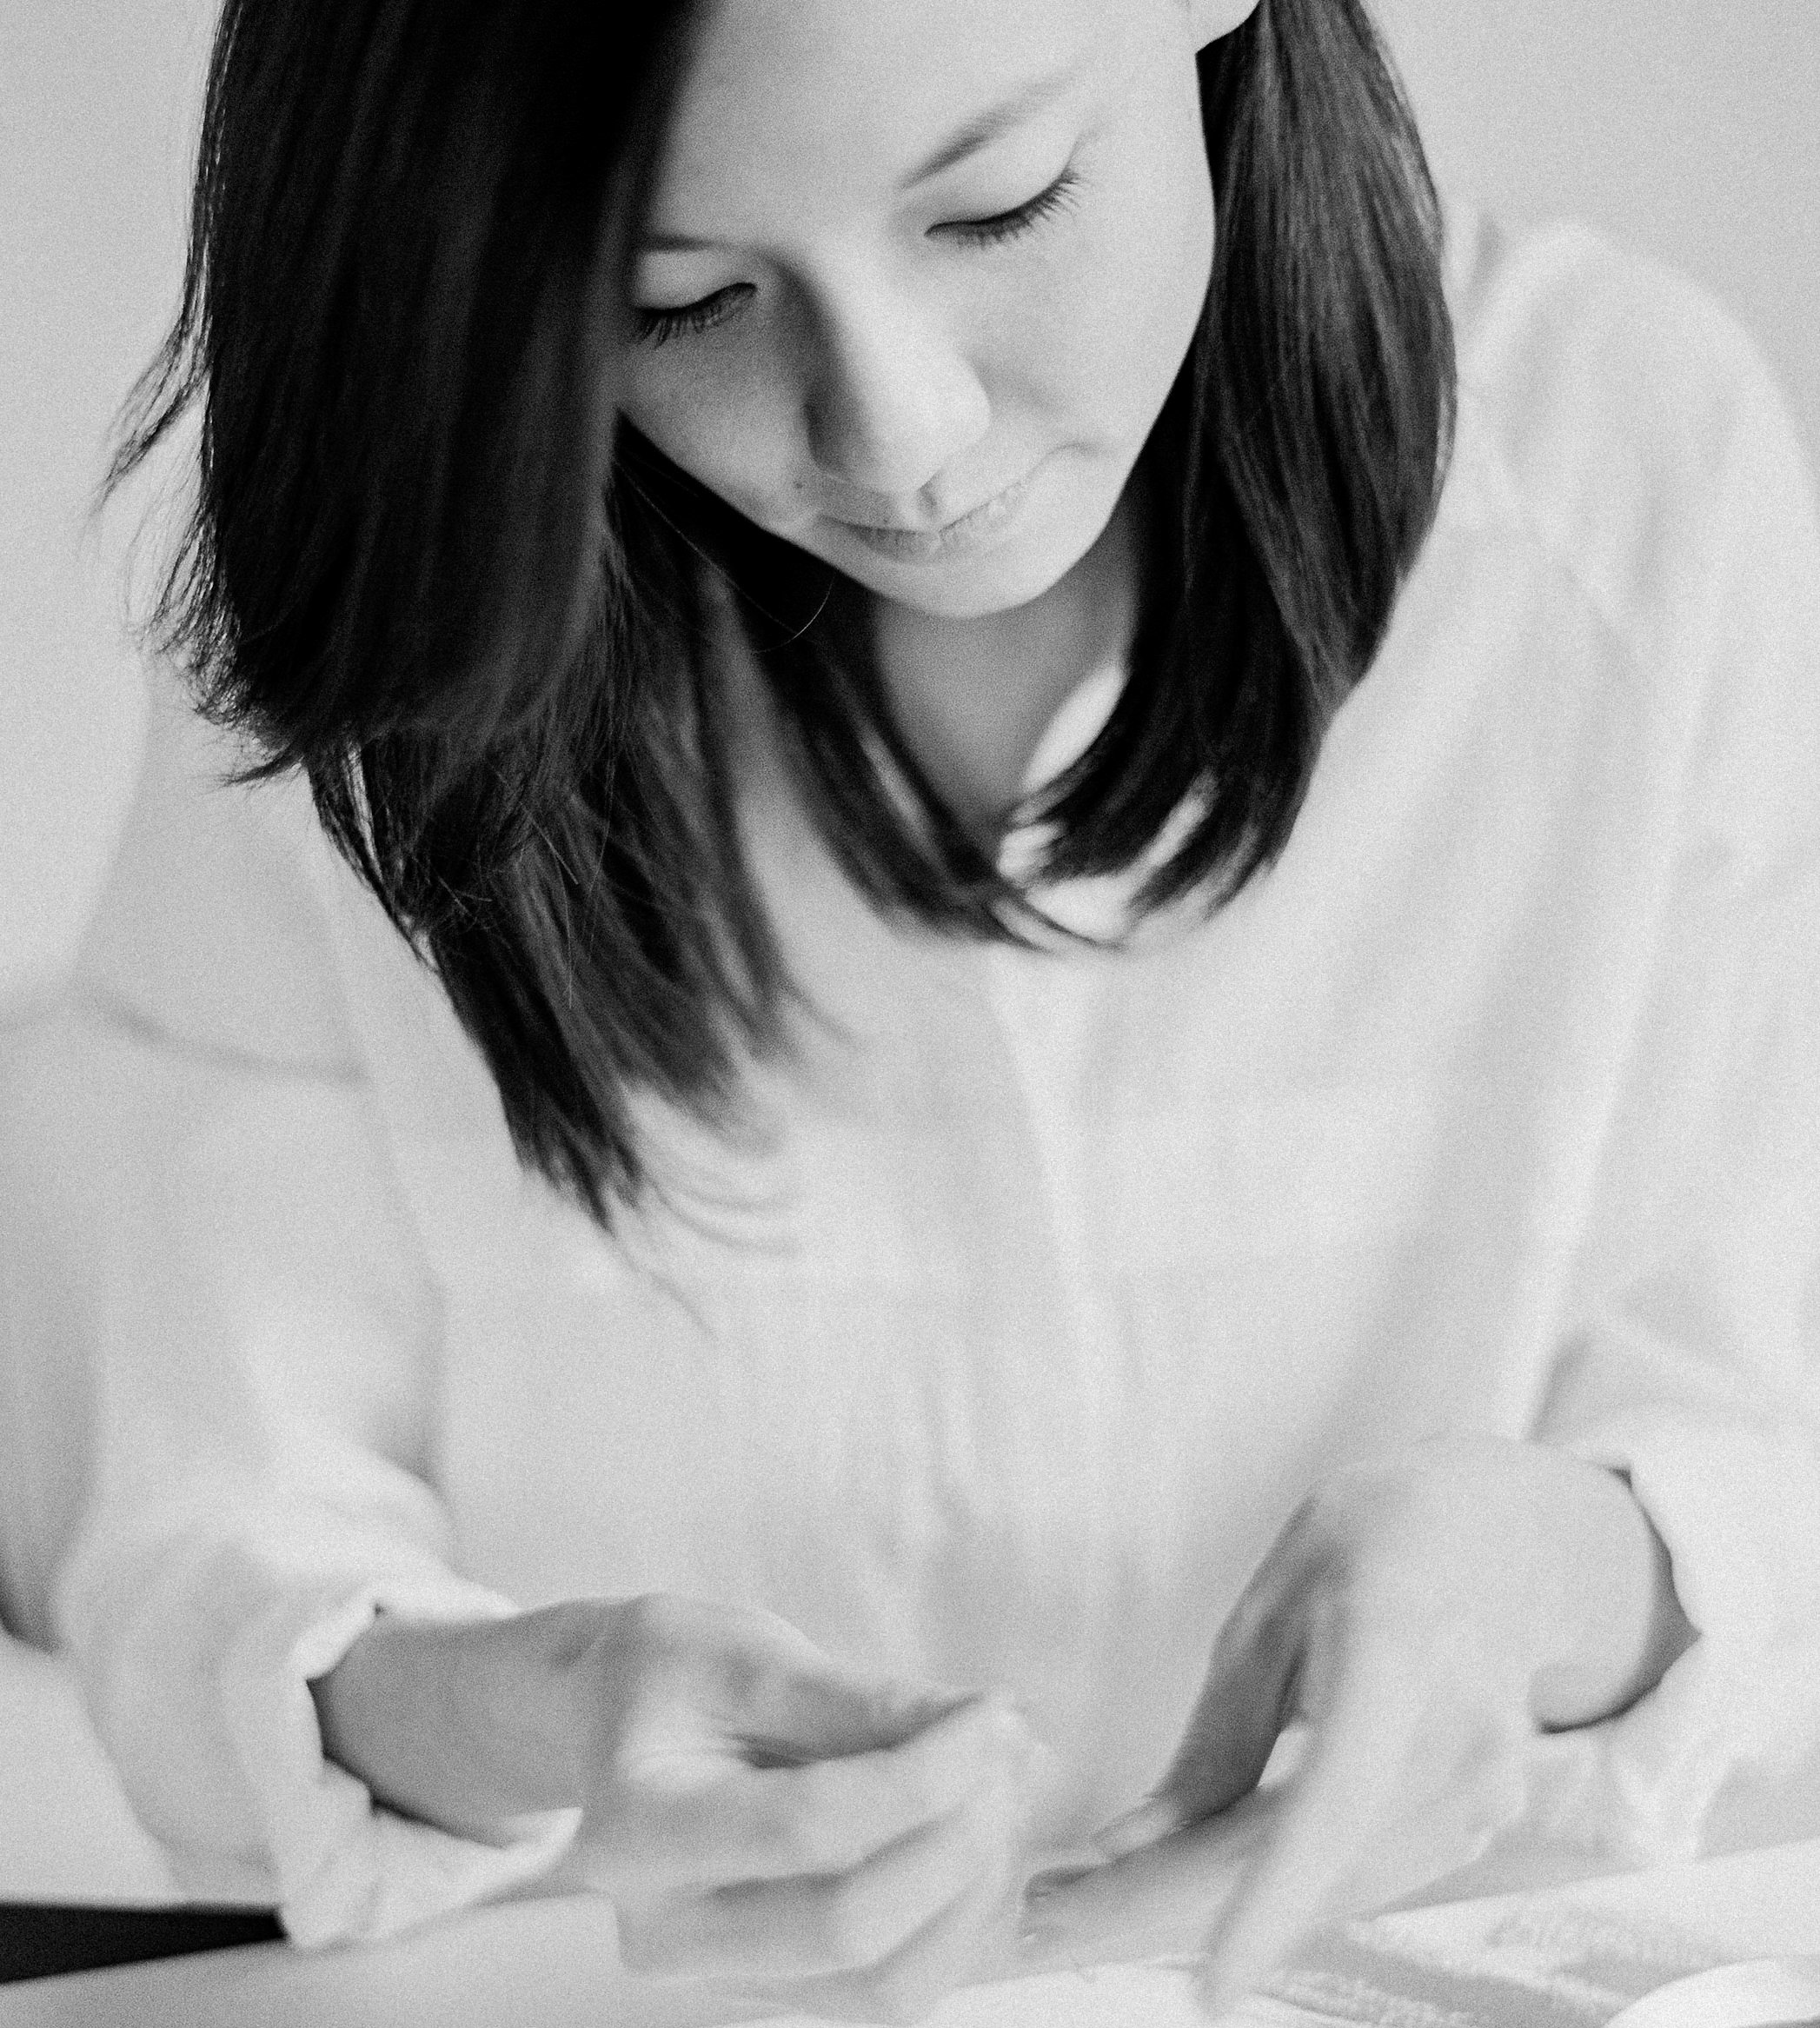 I'M JOYCE - I'm a calligrapher and the jewelry designer behind the collection The Love Collect.I grew up in an extremely tight-knit family, consisting of 3 generations of love, so I've always been hyperaware of relationships and why it's important to upkeep your closest connections.